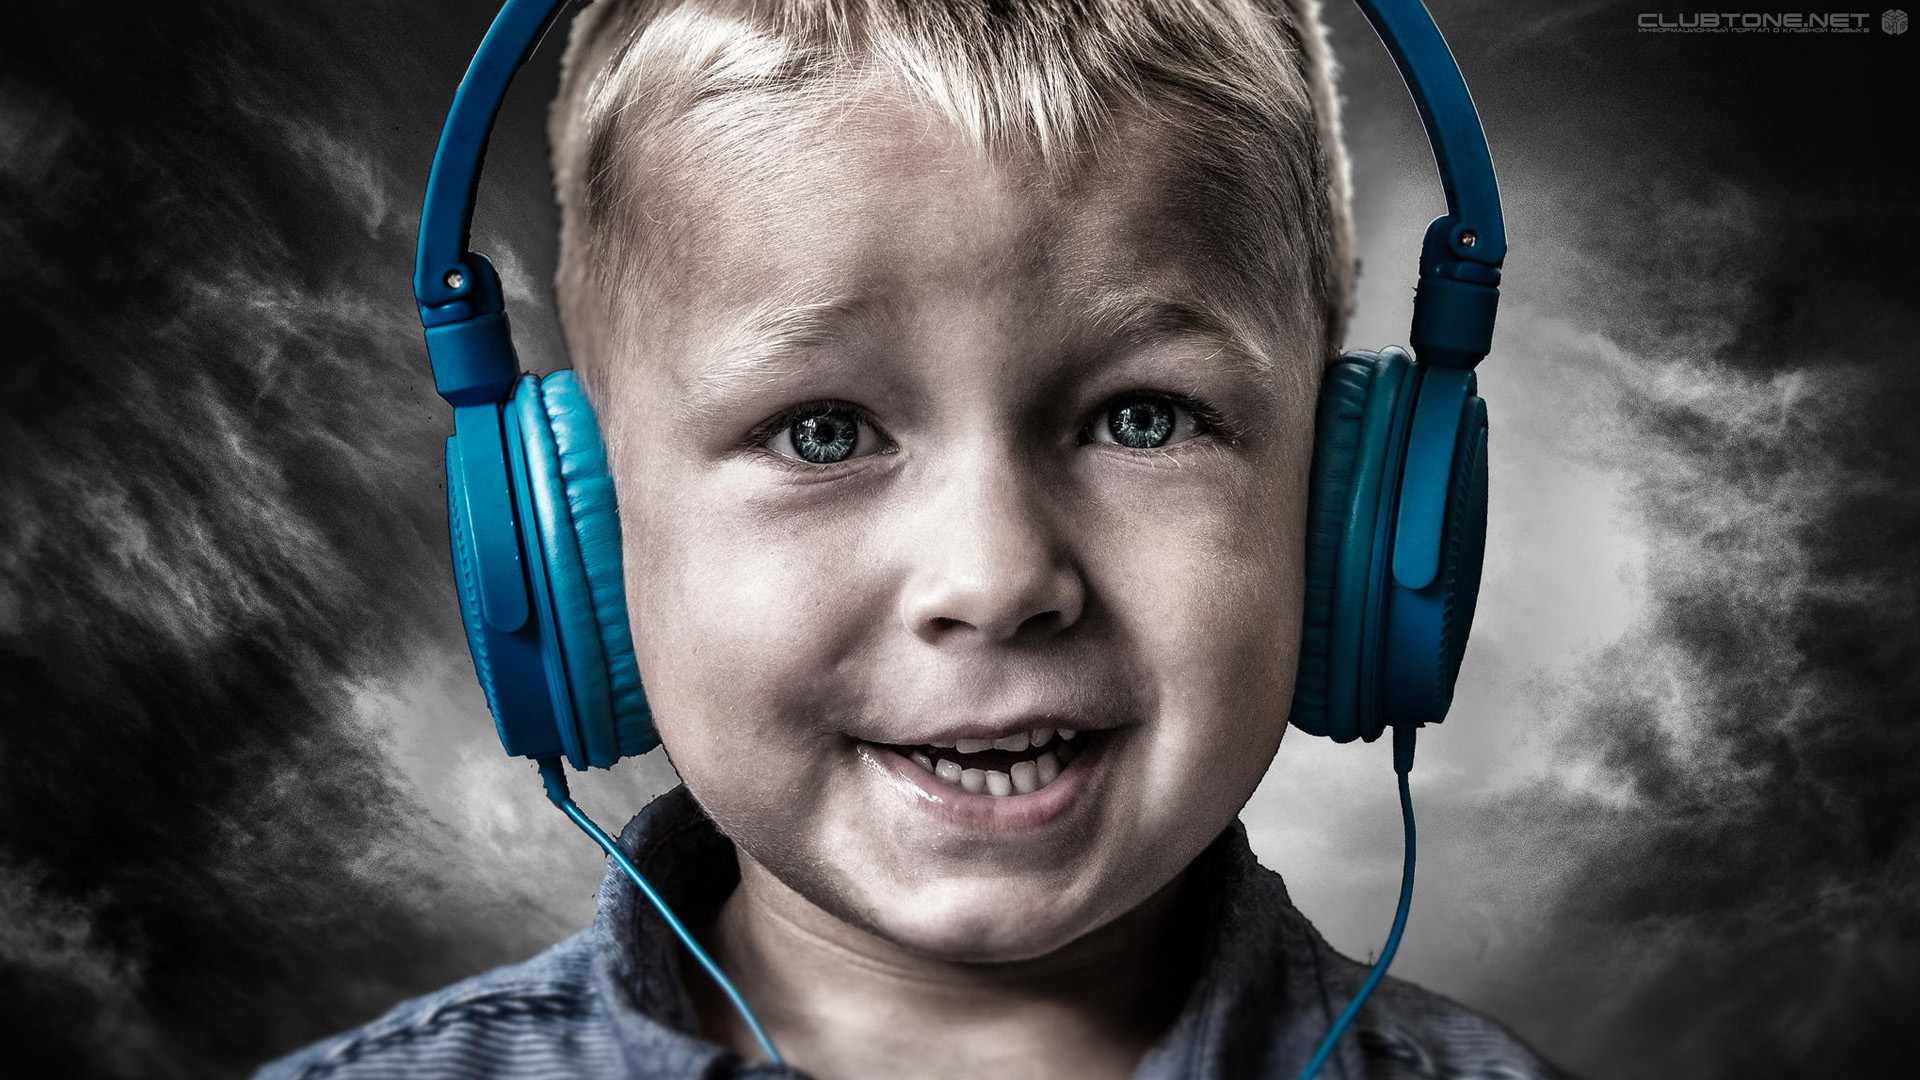 blue-eyed boy with blue headphones